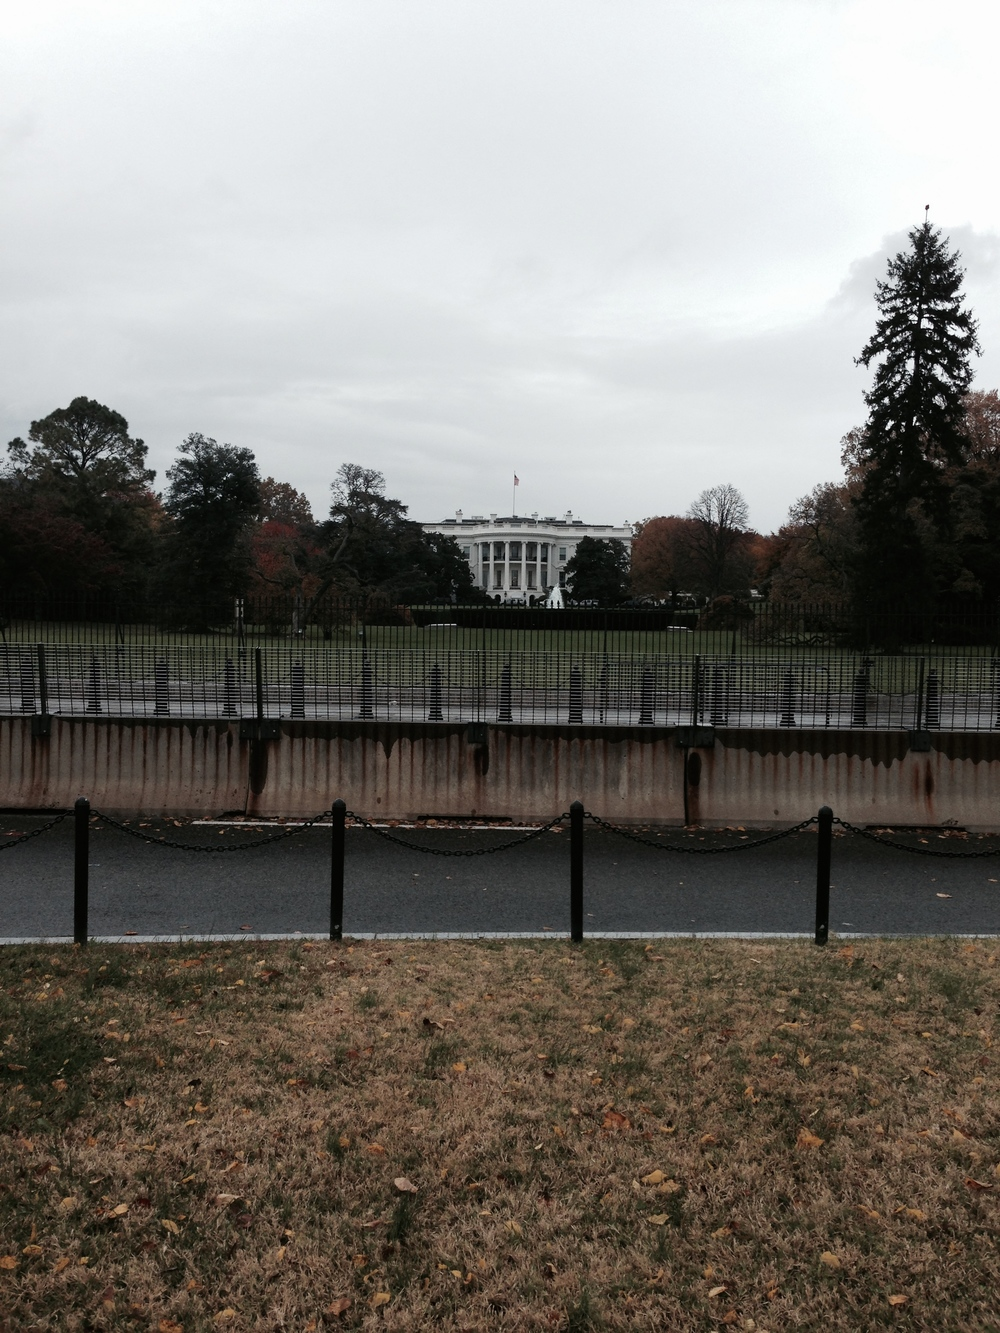 White House! Seriously far away.